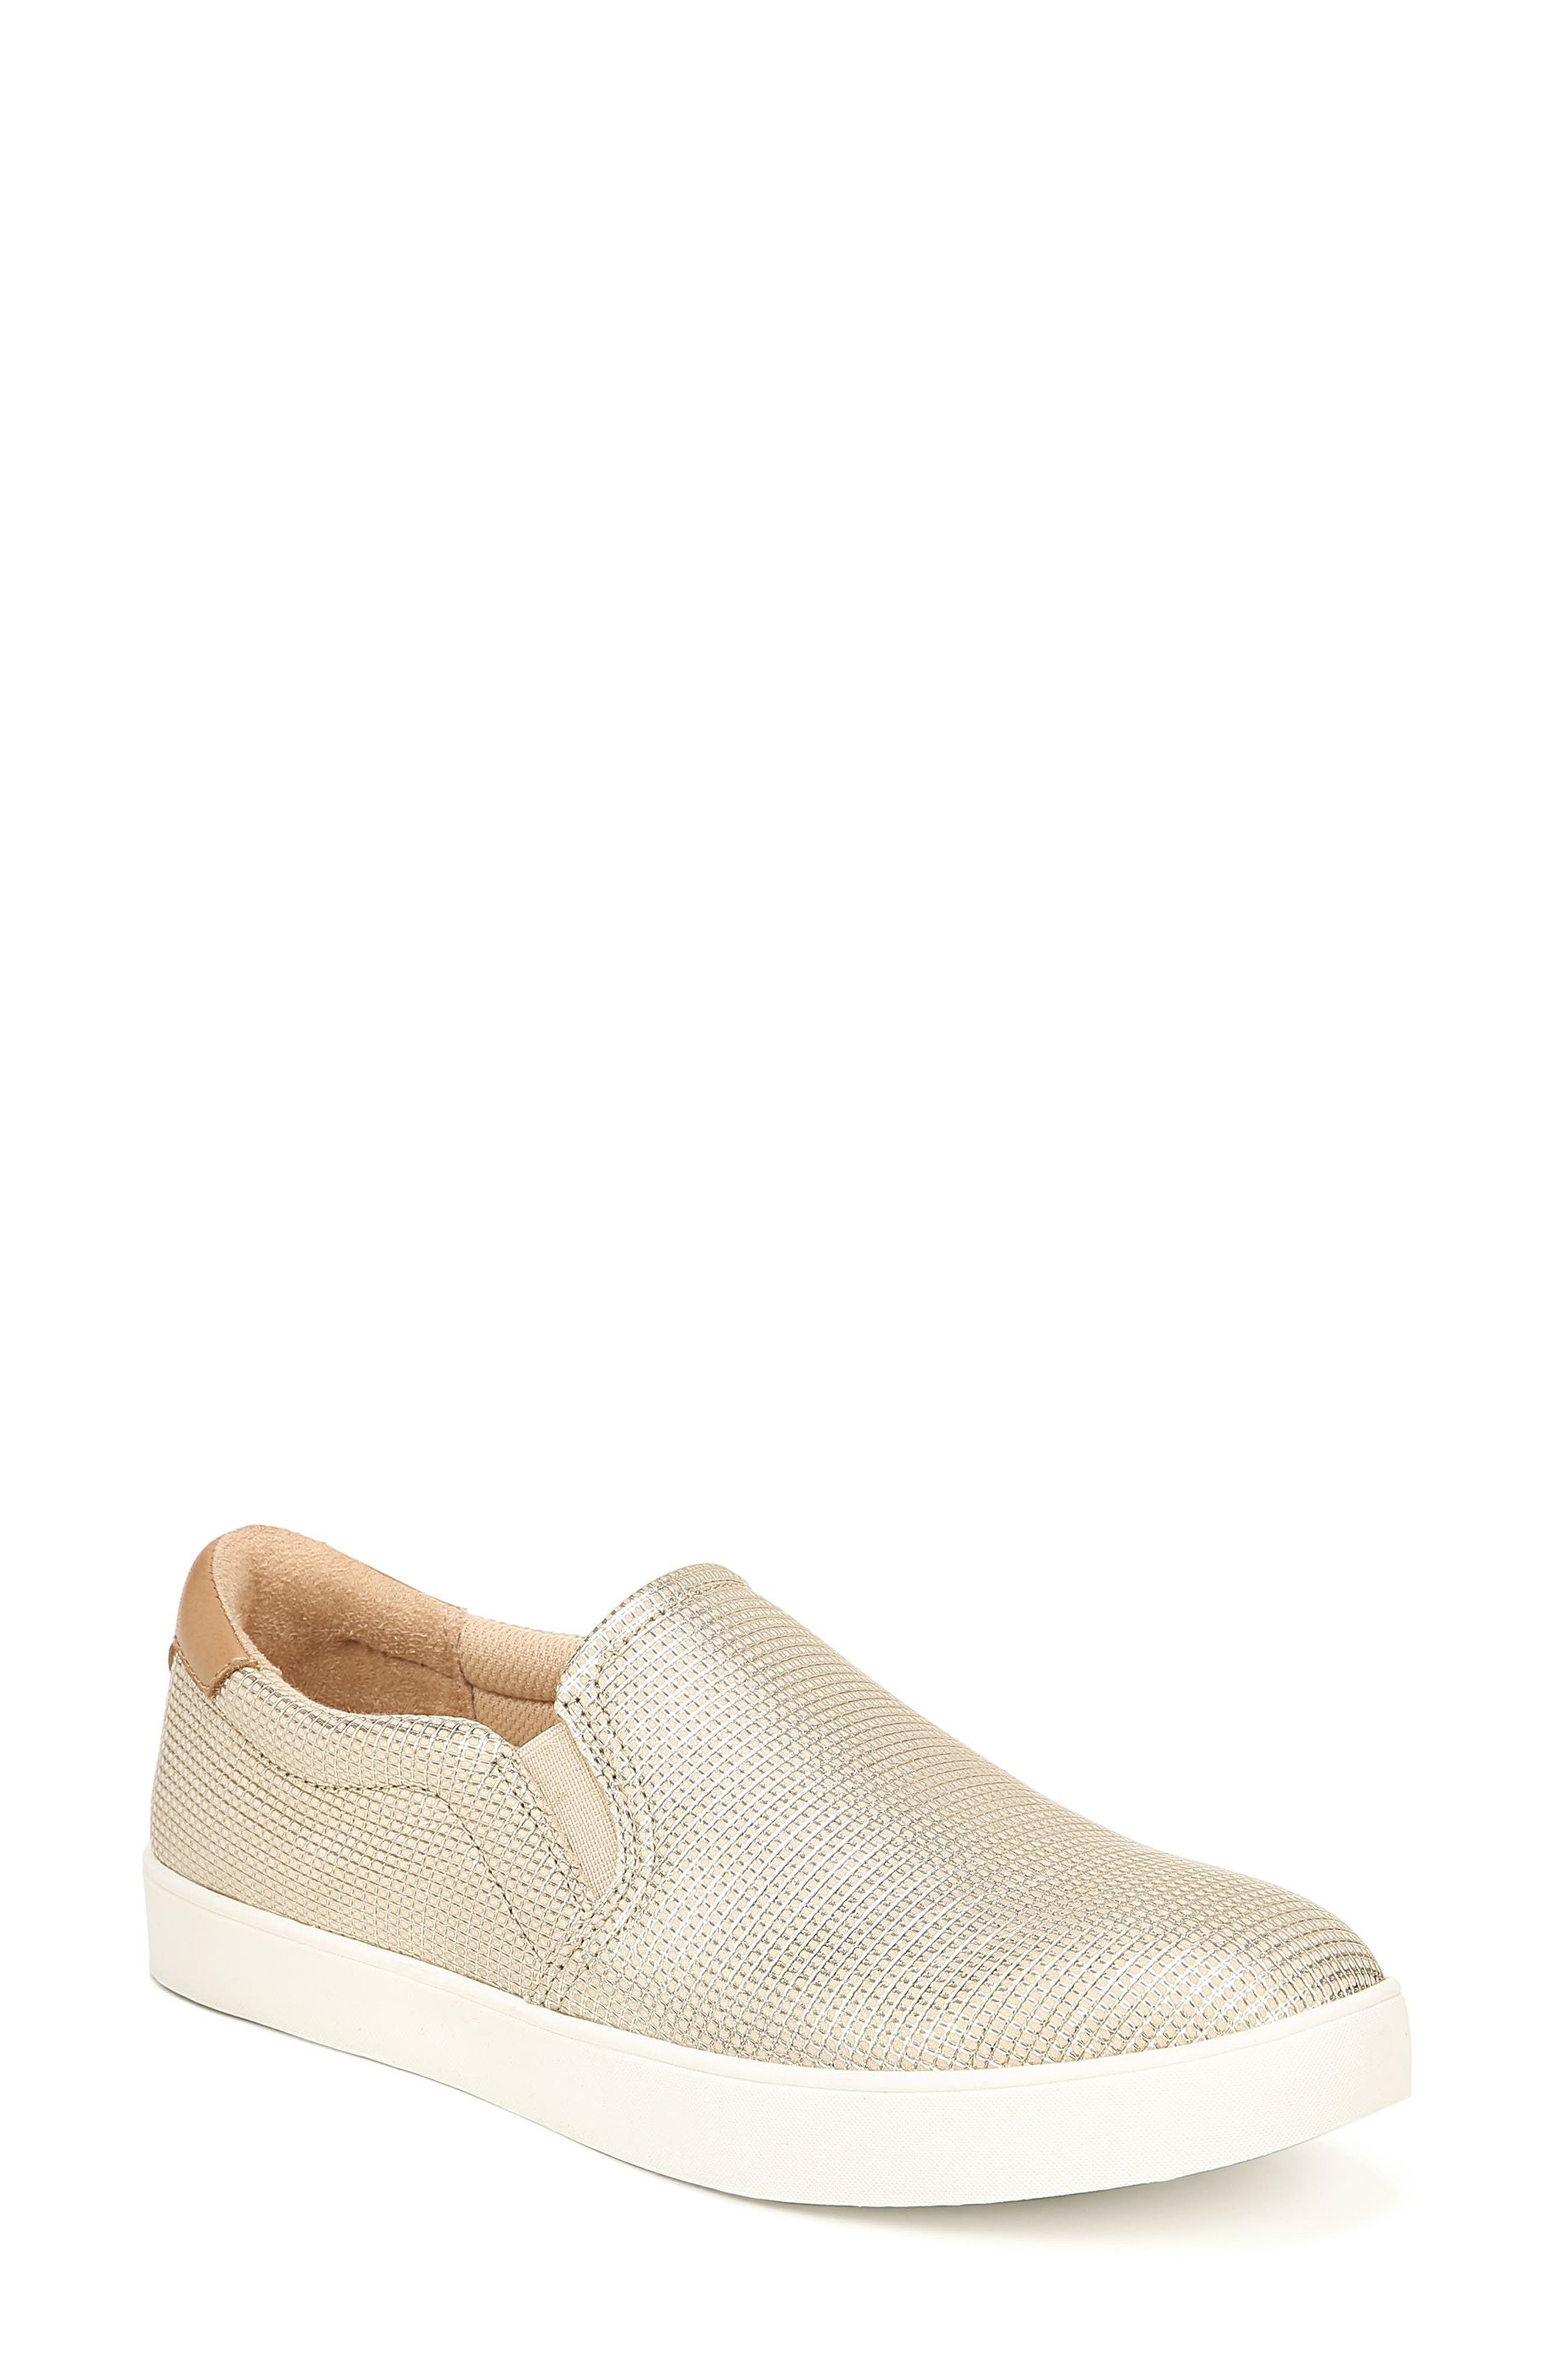 Original Collection 'Scout' Slip On Sneaker,                             Main thumbnail 1, color,                             252